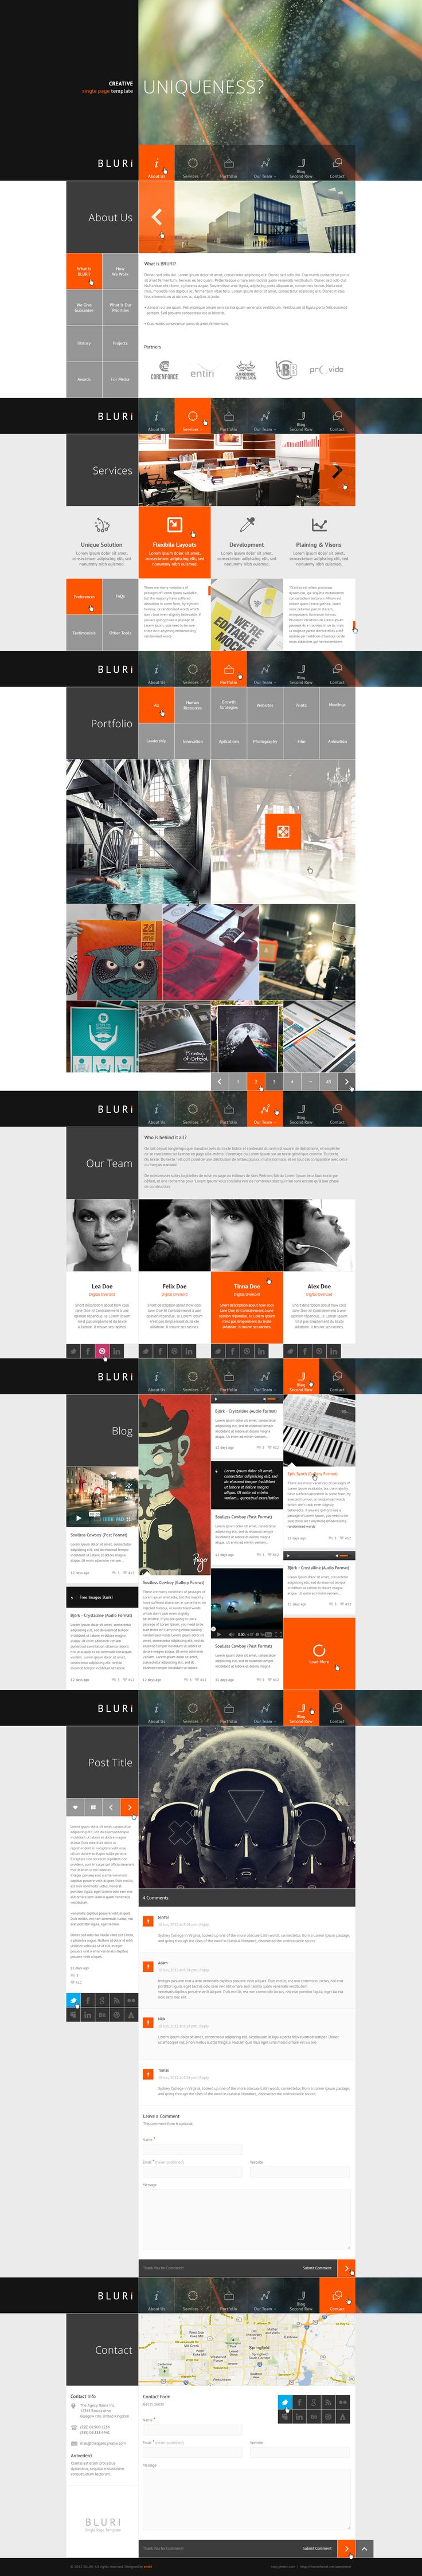 BLURI Single Page web design